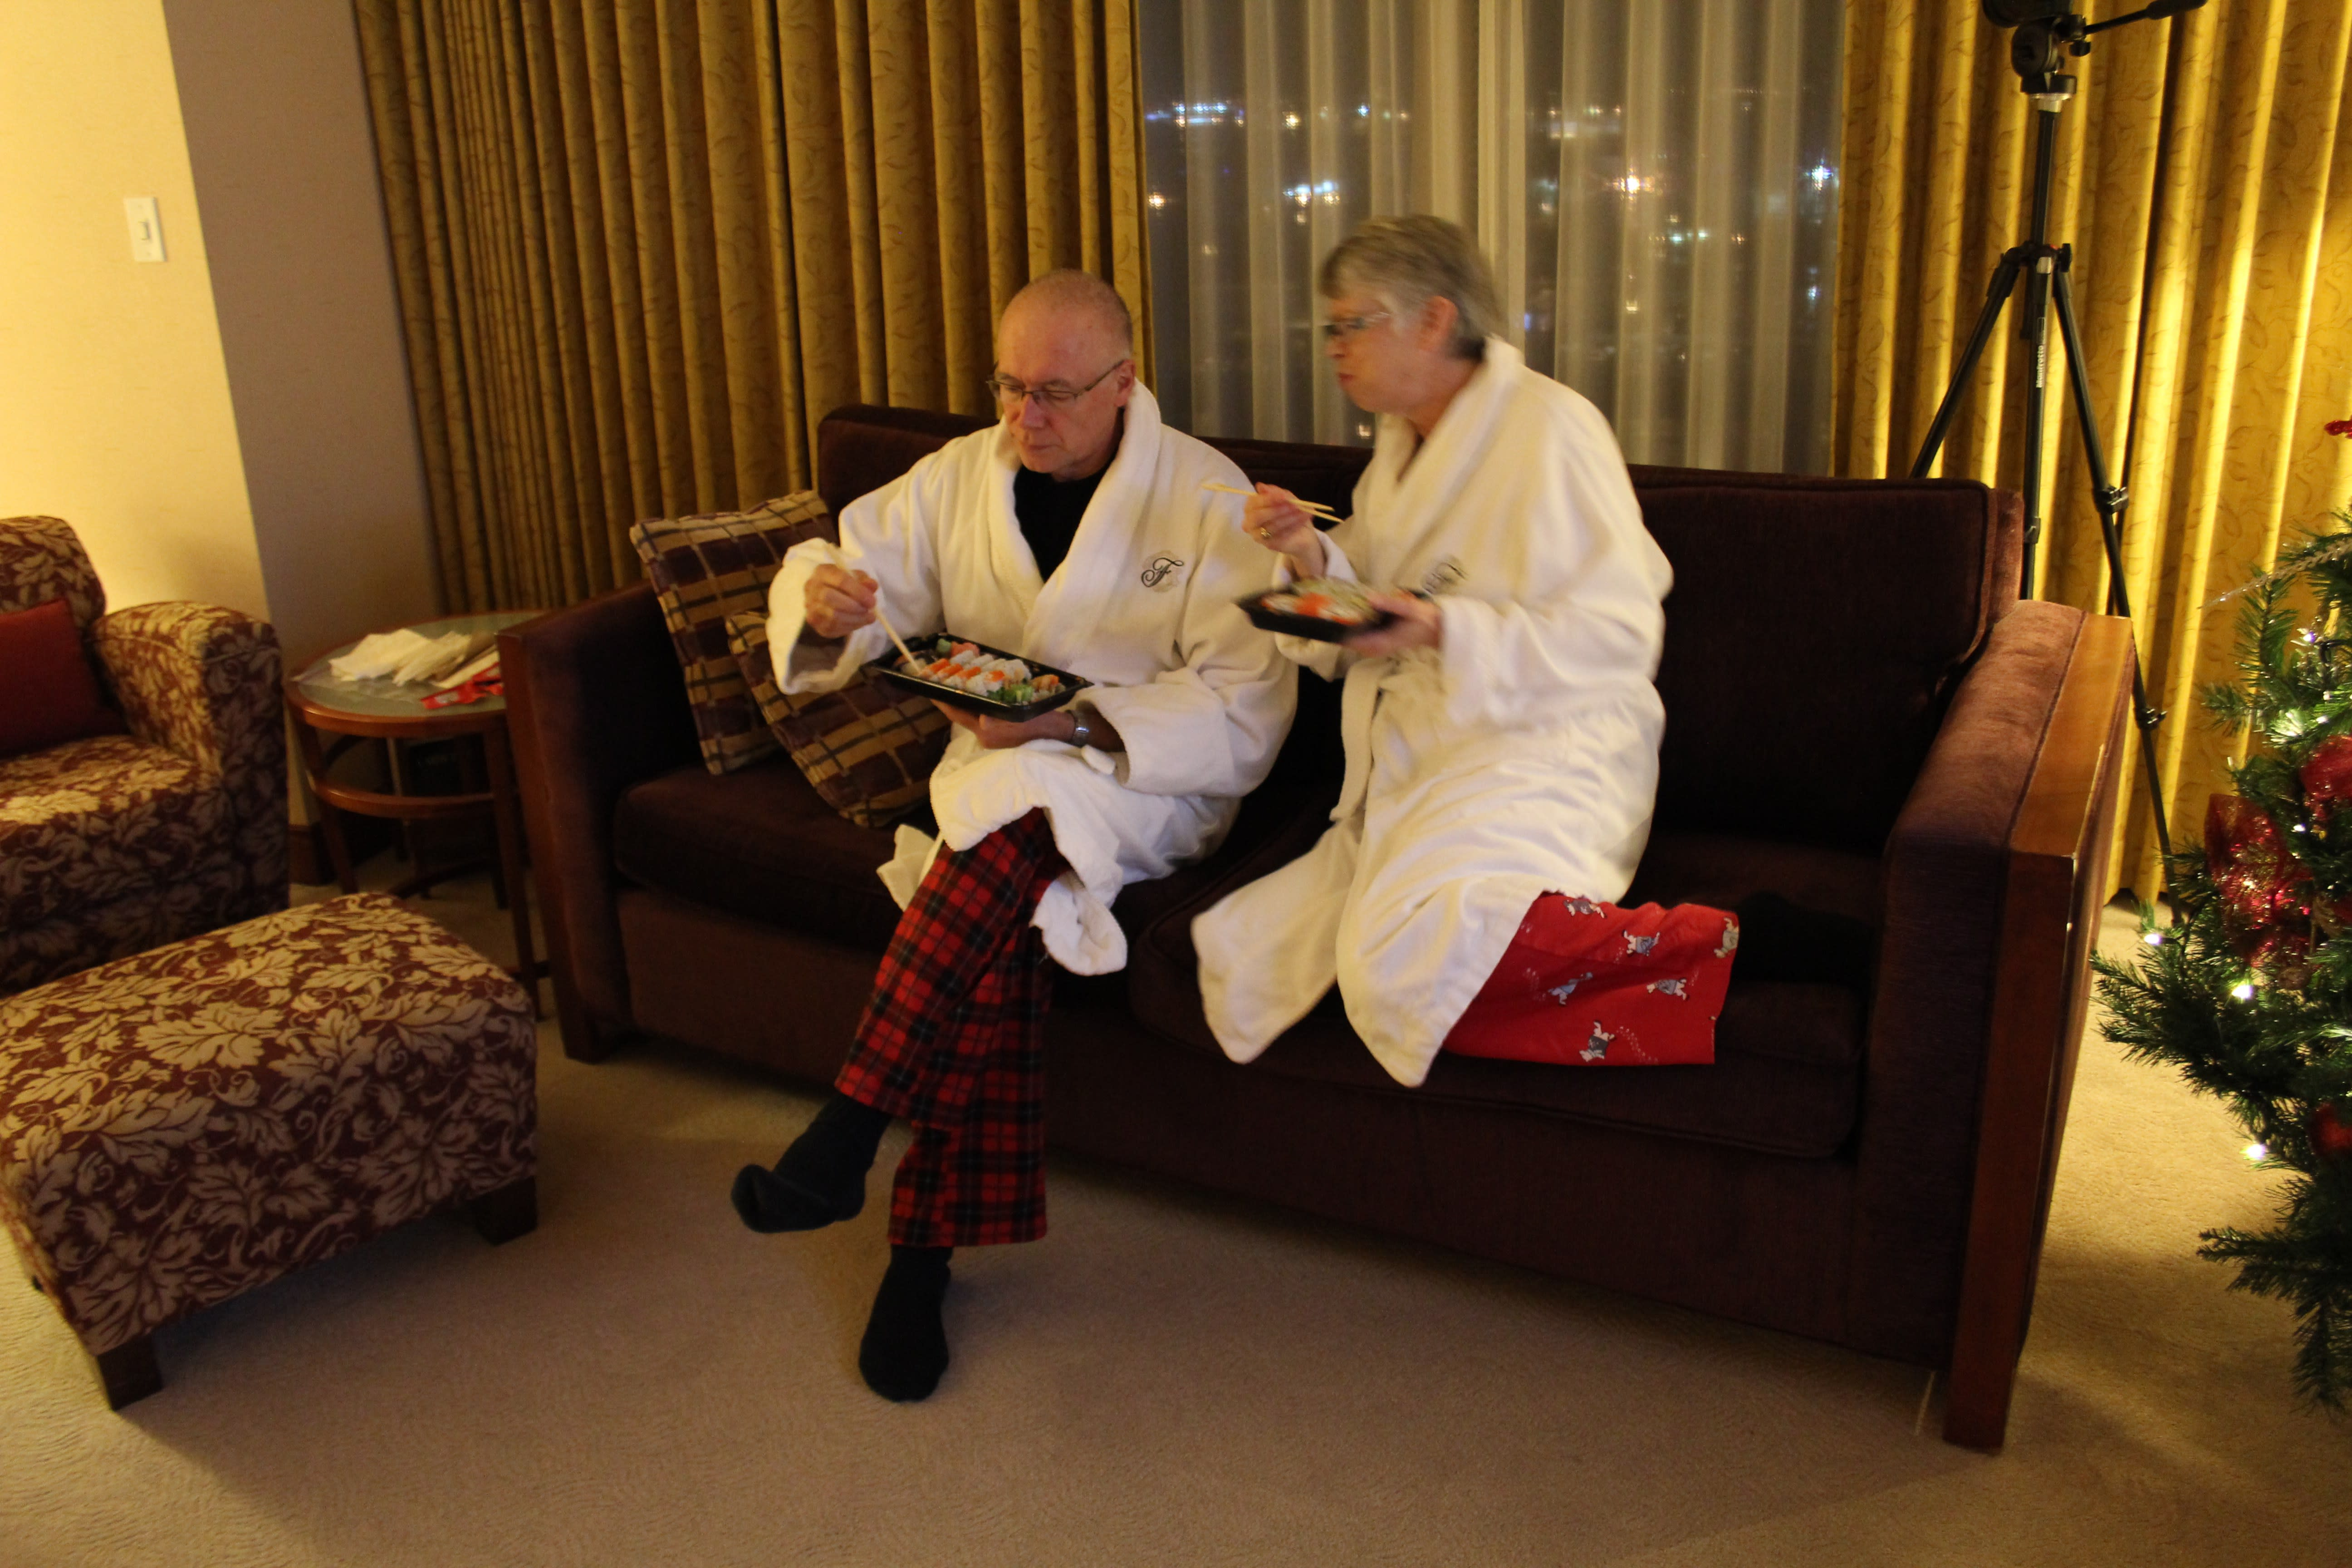 Mom and Dad in robes at Fairmont YVR